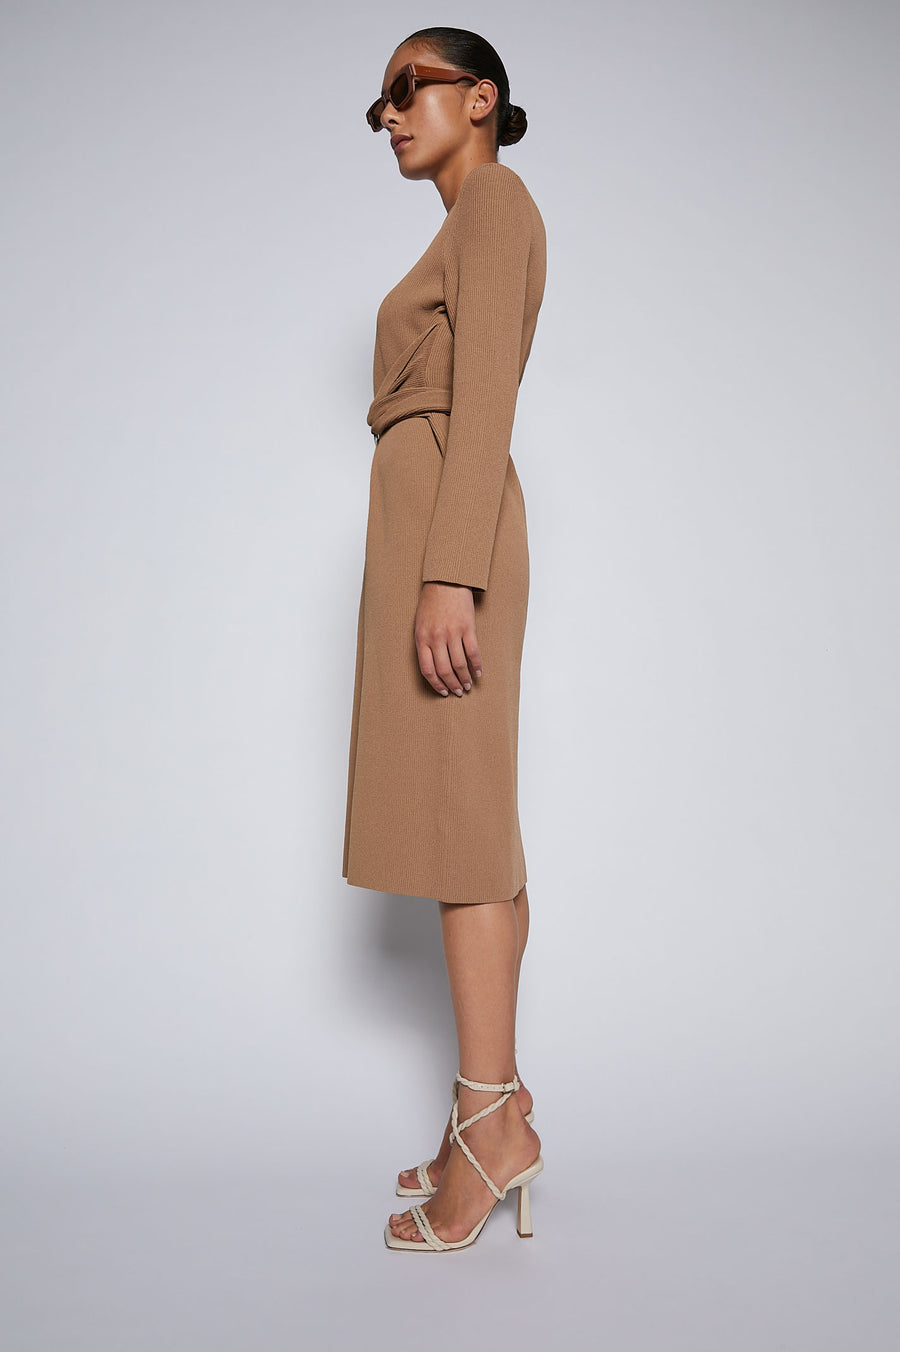 The Crepe Knit Belted Dress features long sleeves, below the knee length, reversible belt and silver hardware.